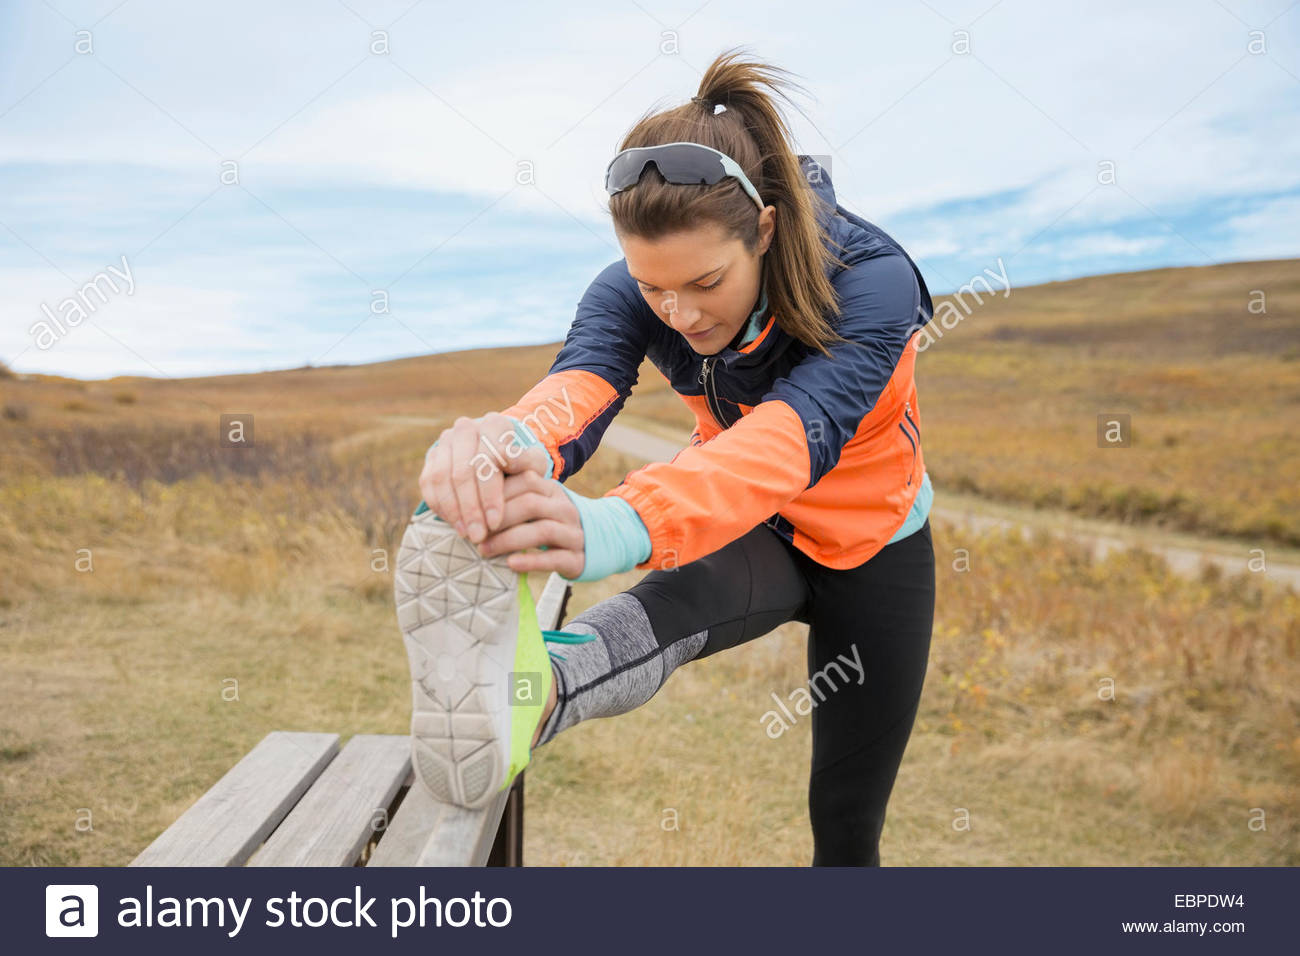 Runner stretching leg sur banc rural Photo Stock